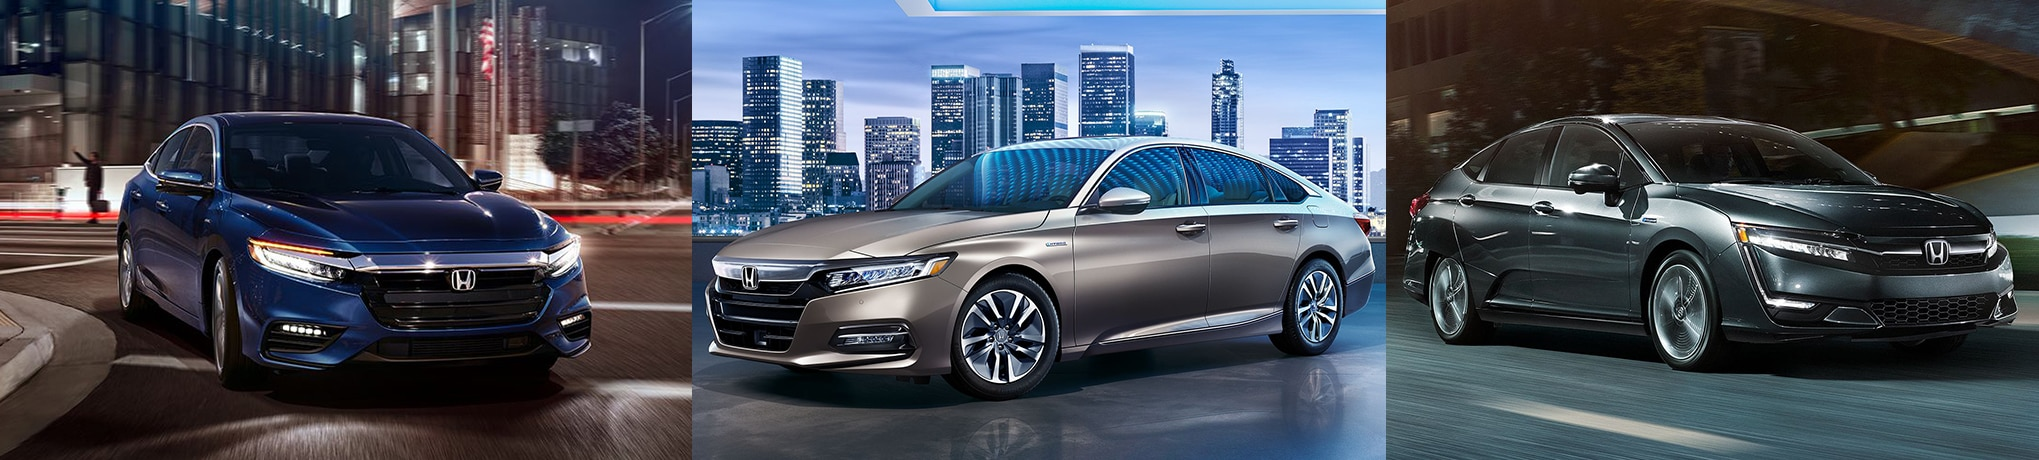 2019 Honda Insight vs 2018 Honda Accord Hybrid vs 2018 Honda Clarity Plug-In Hybrid